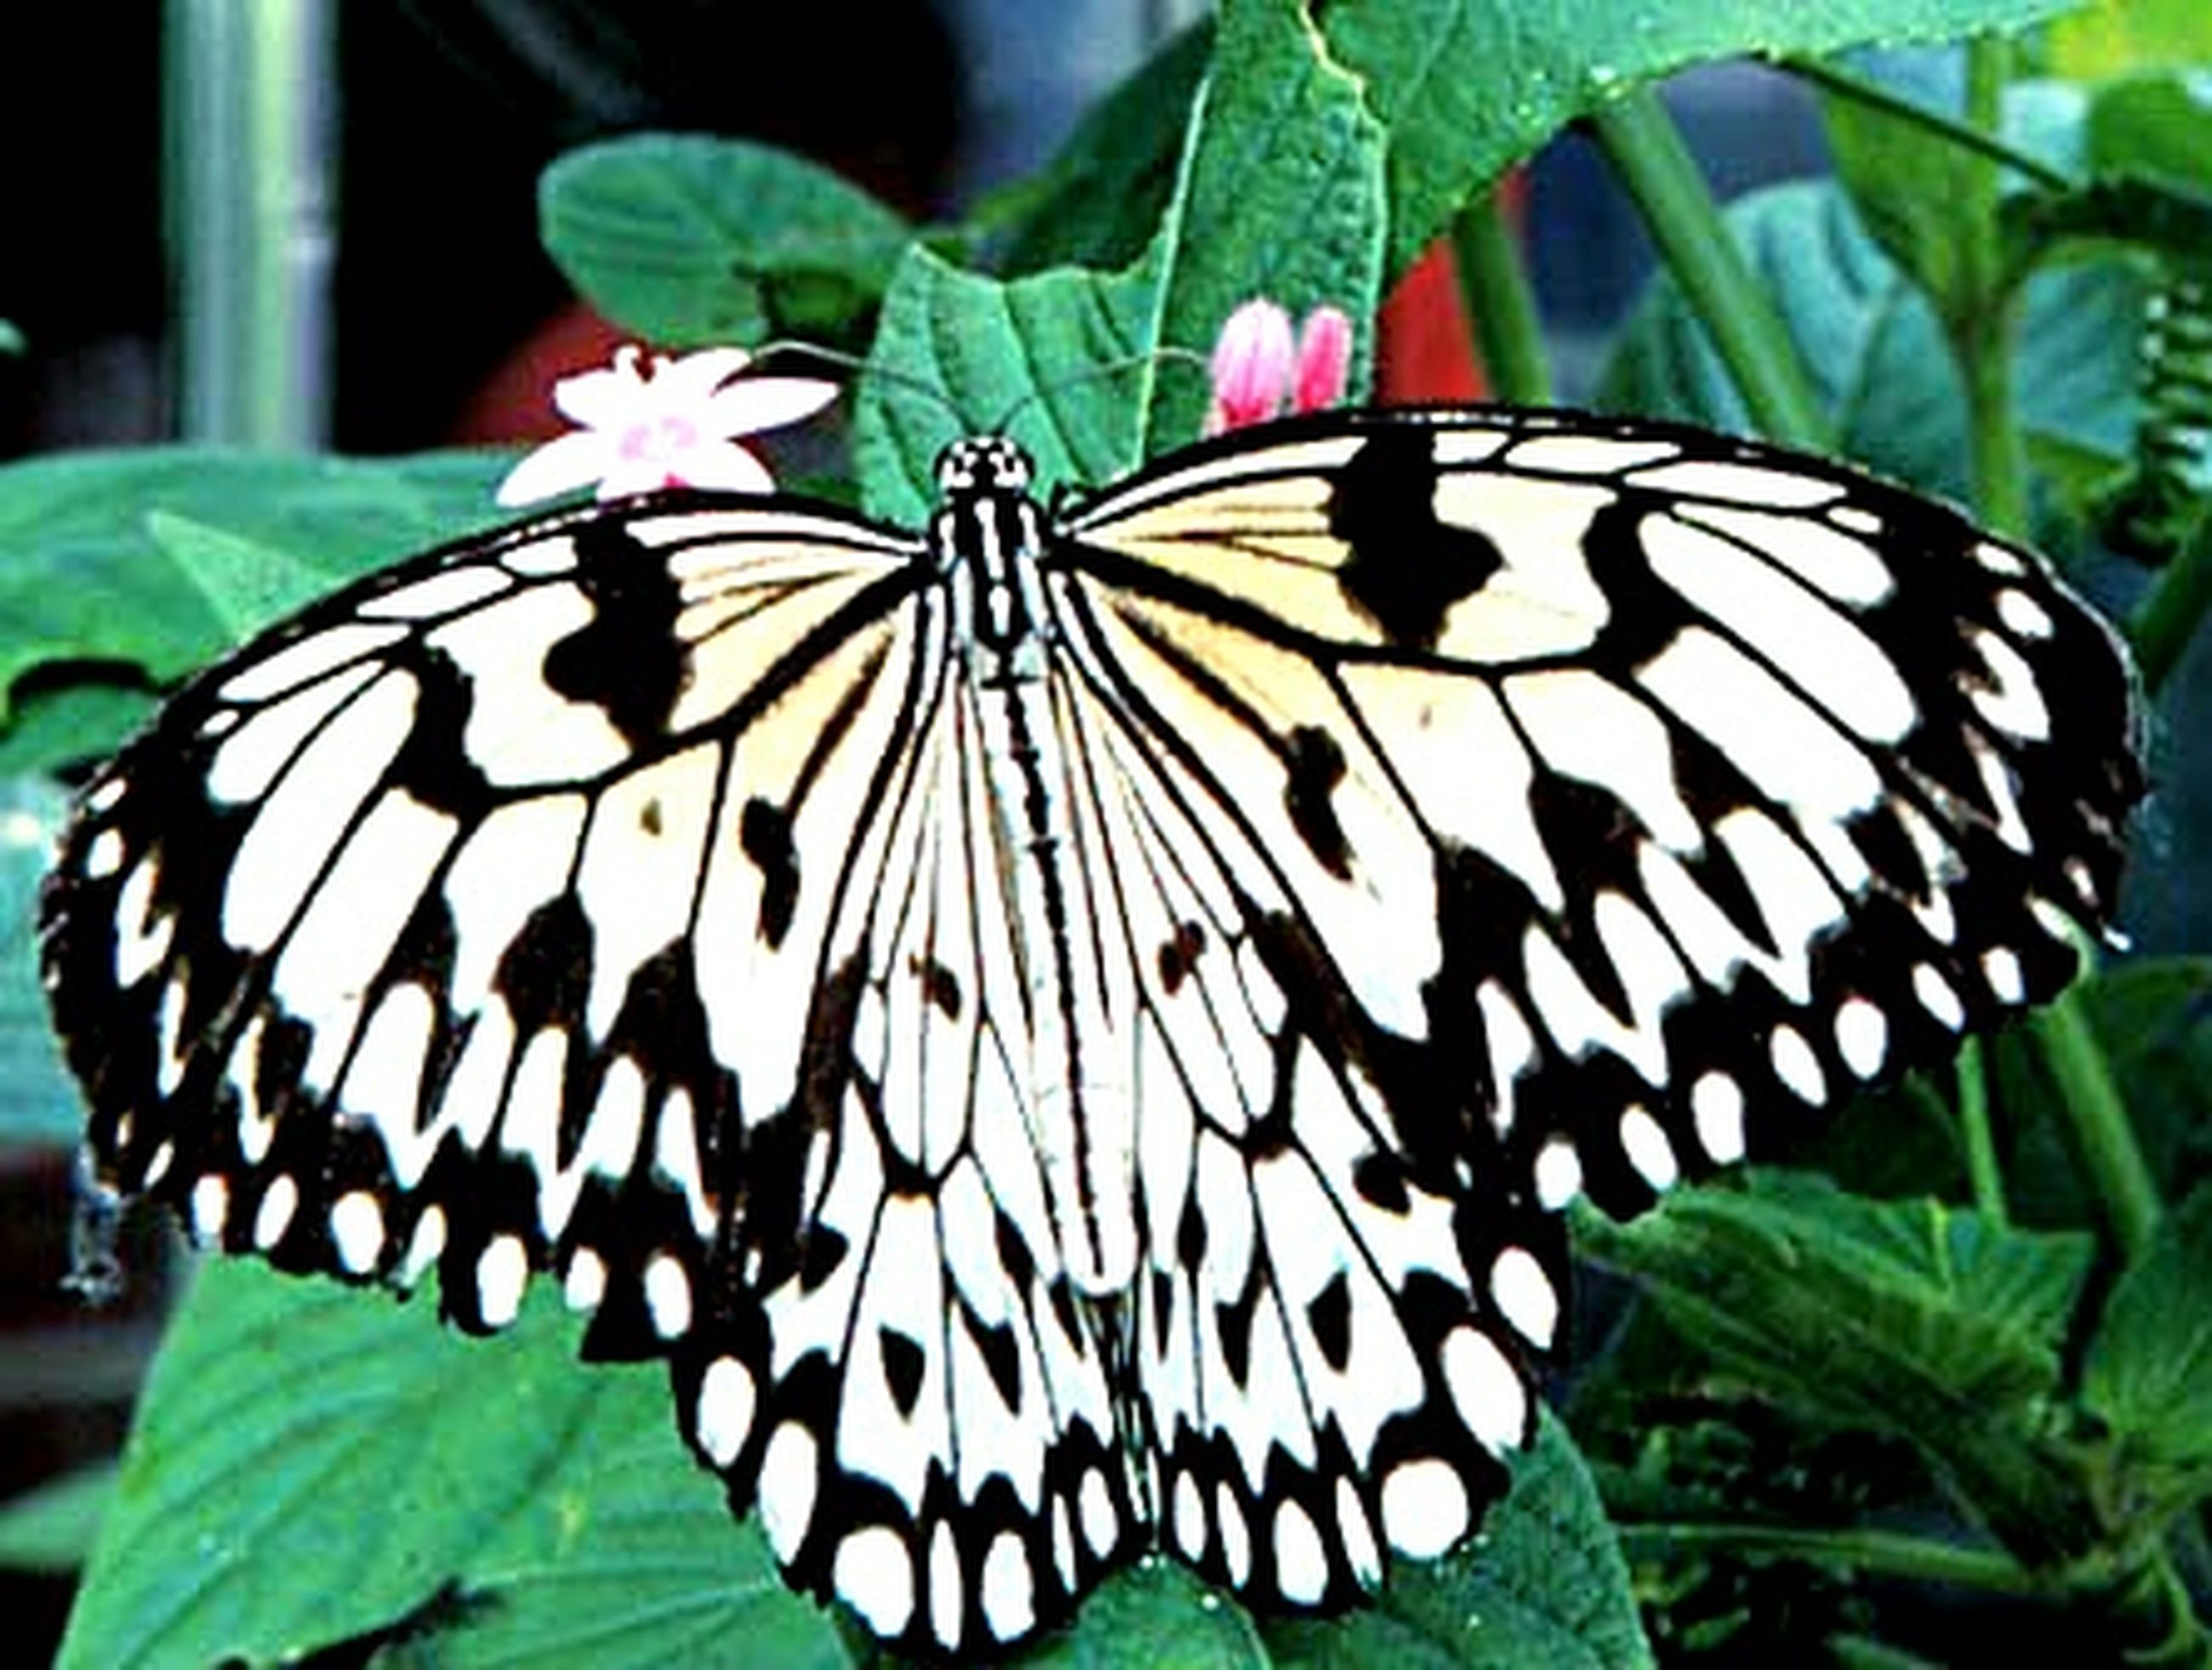 butterfly - insect, insect, animals in the wild, one animal, animal themes, leaf, animal markings, wildlife, butterfly, close-up, natural pattern, focus on foreground, animal wing, plant, beauty in nature, nature, green color, growth, pattern, outdoors